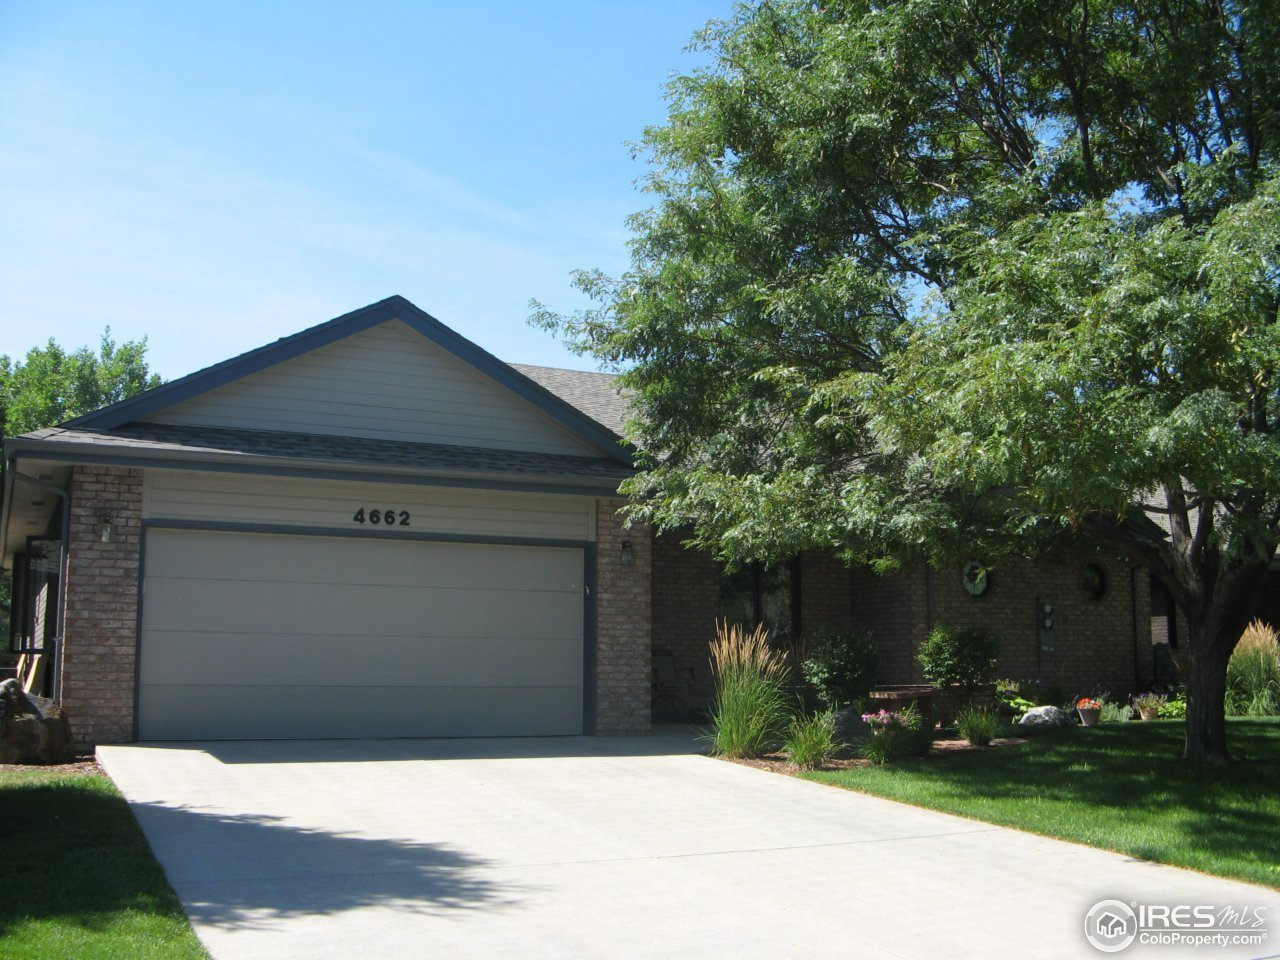 4662 23rd st, greeley, co 80634   mls# 828045   redfin